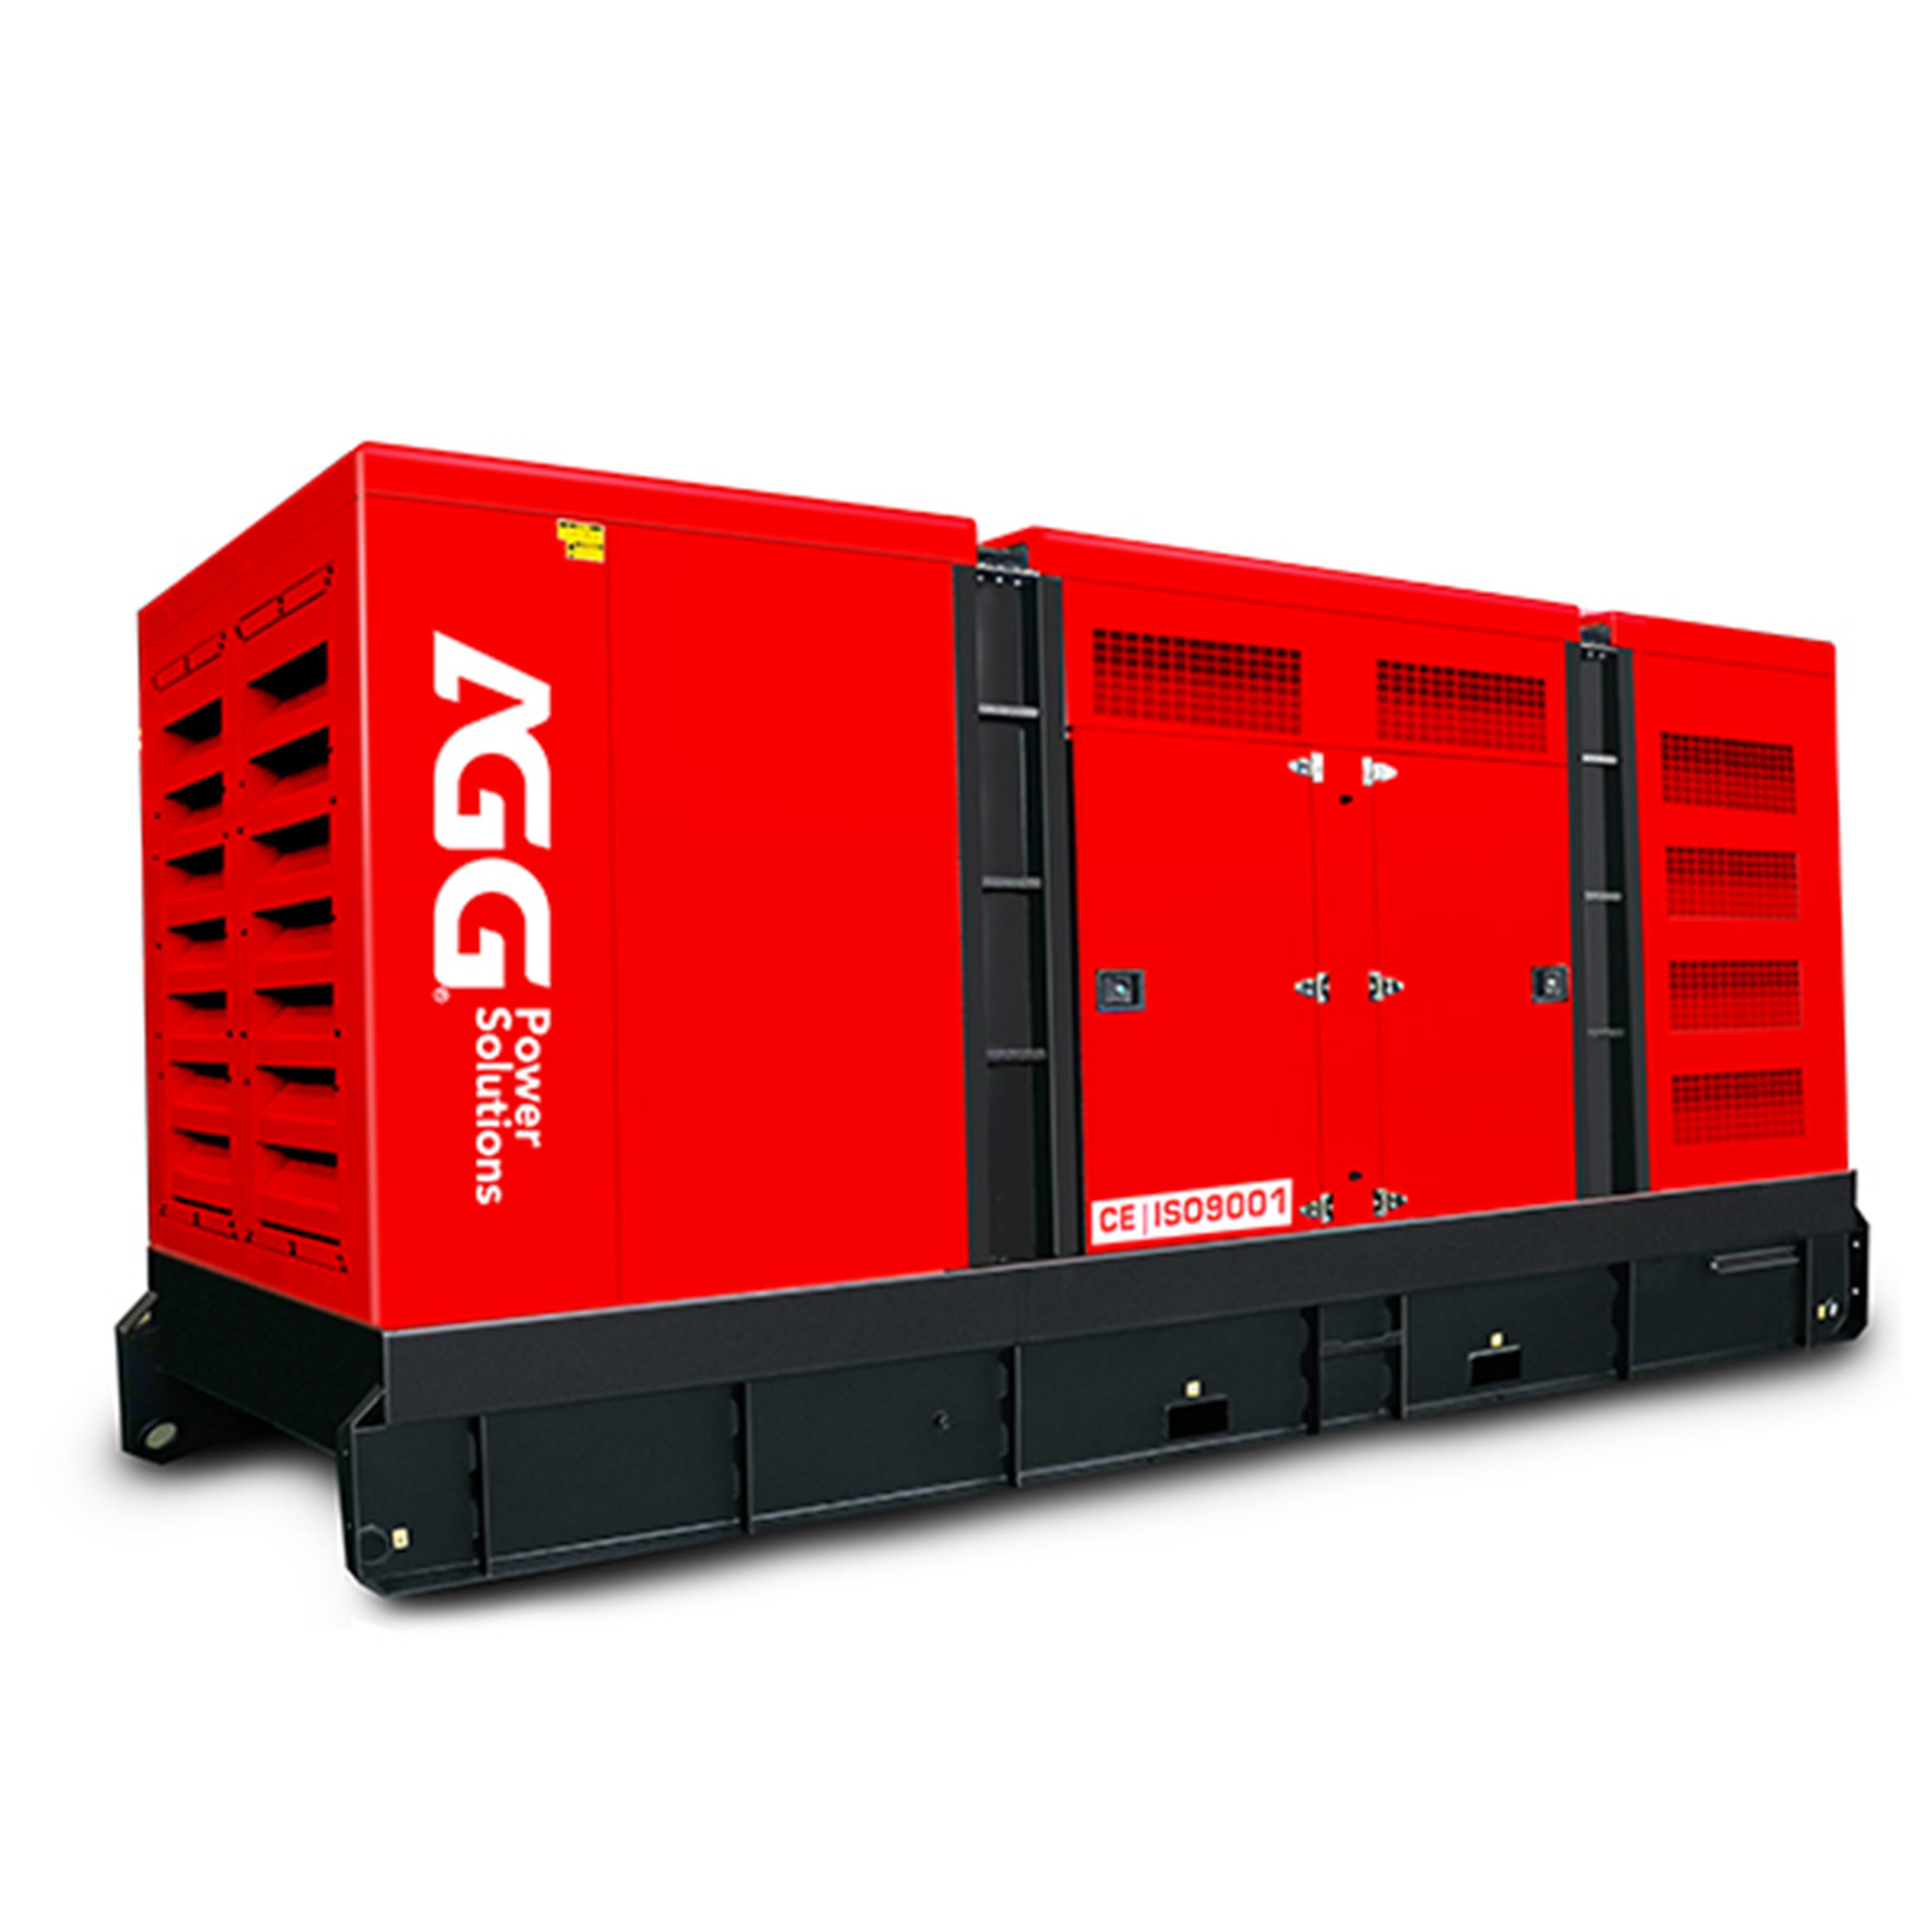 High reputation Diesel Generator With Air Cooled System - P938D6-60HZ – AGG Power Featured Image